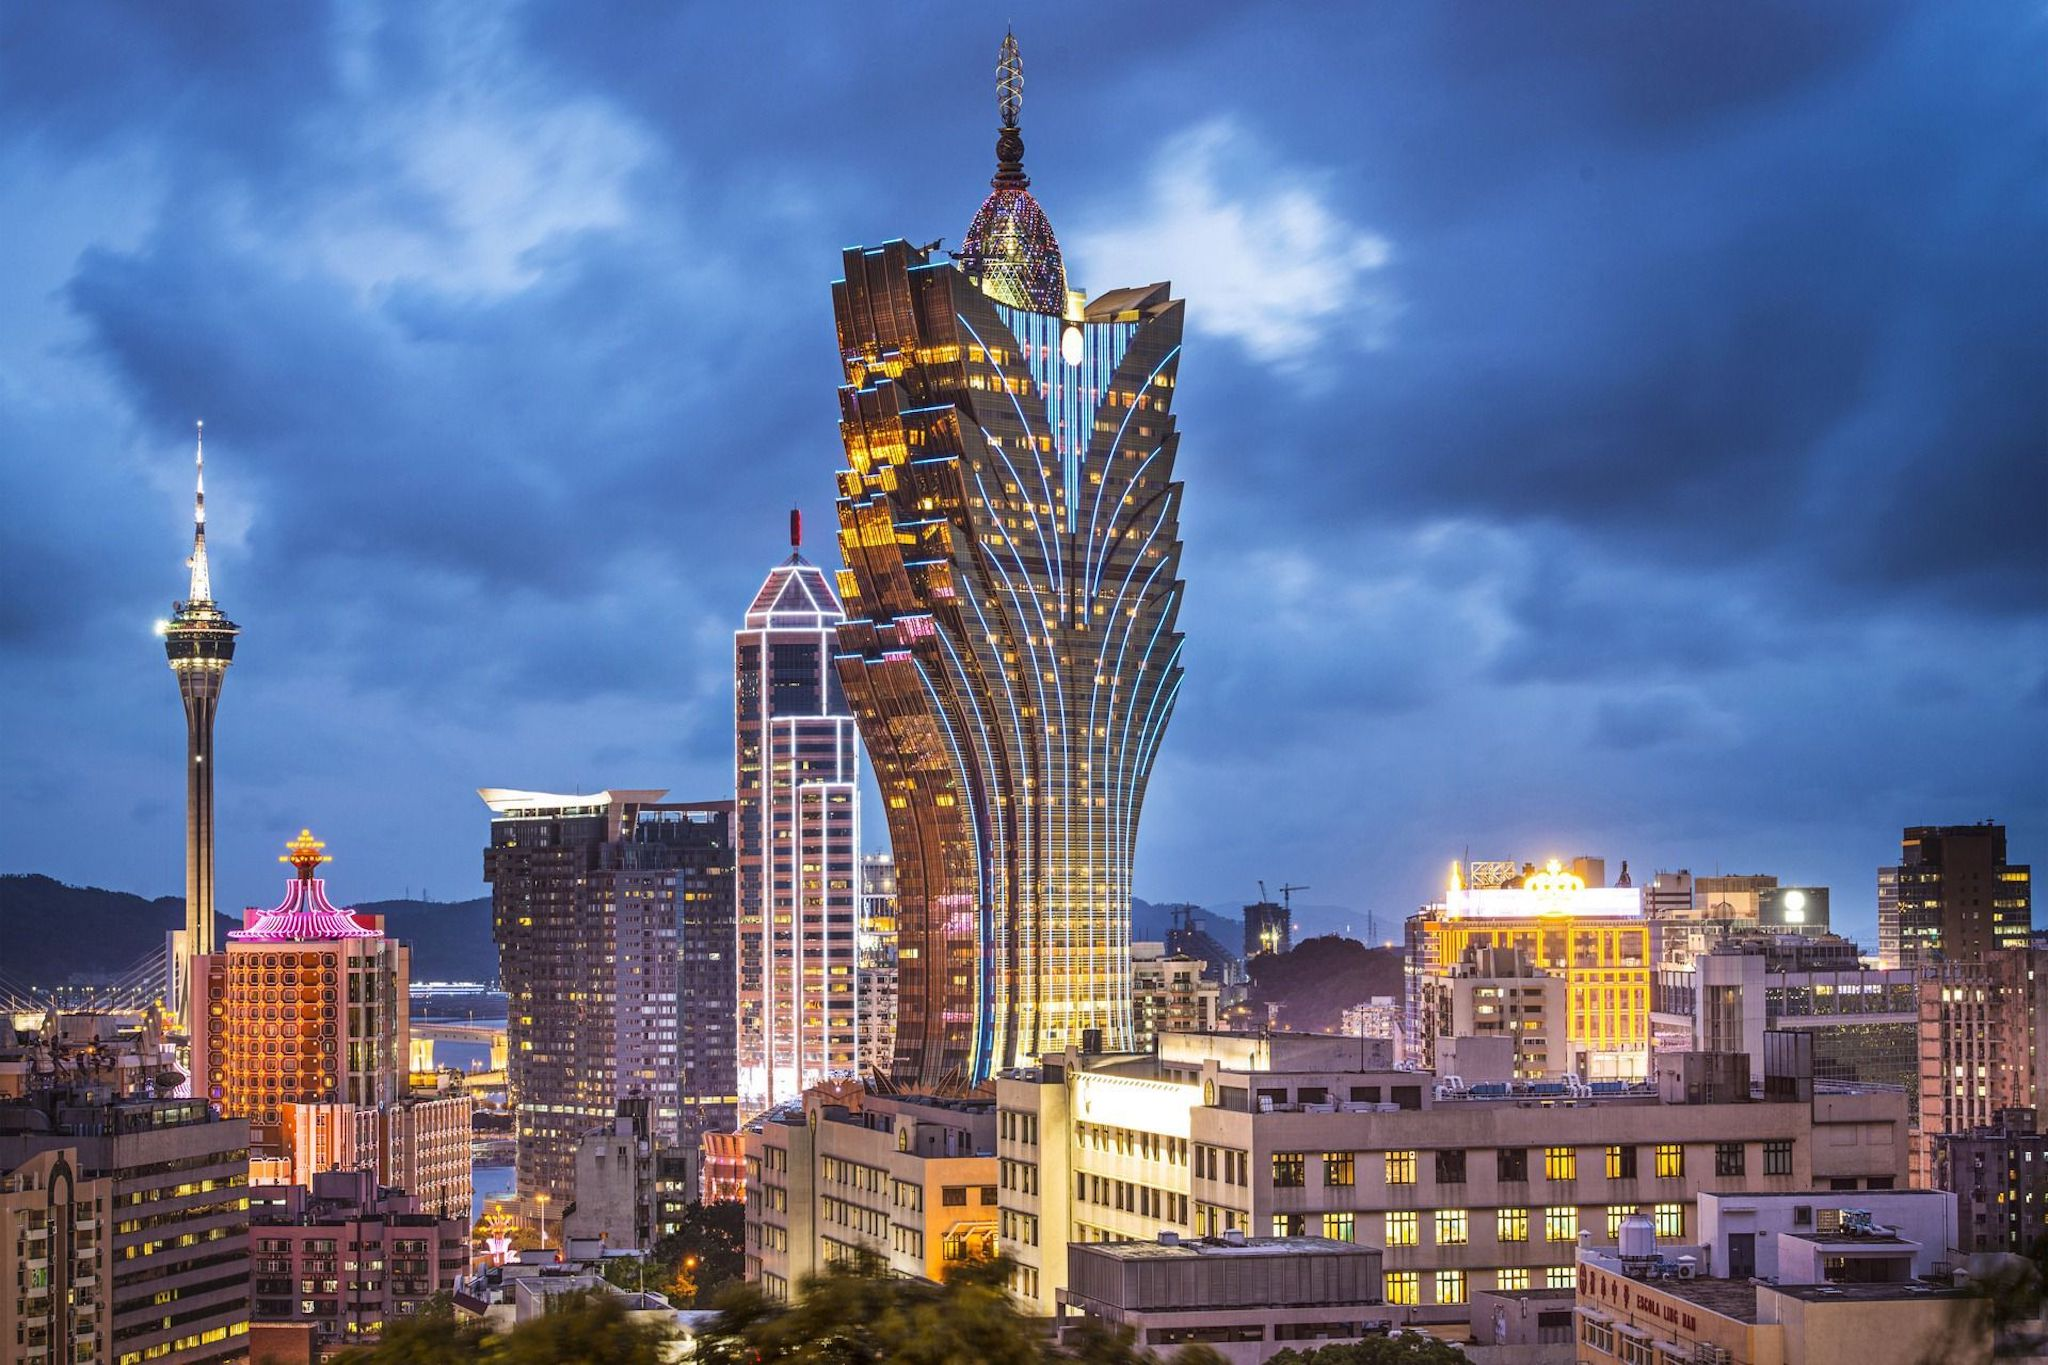 Most Stunning Buildings in the World Most Stunning Buildings in the World The Most Stunning Buildings in the World According to Lonely Planet  grandlisboa